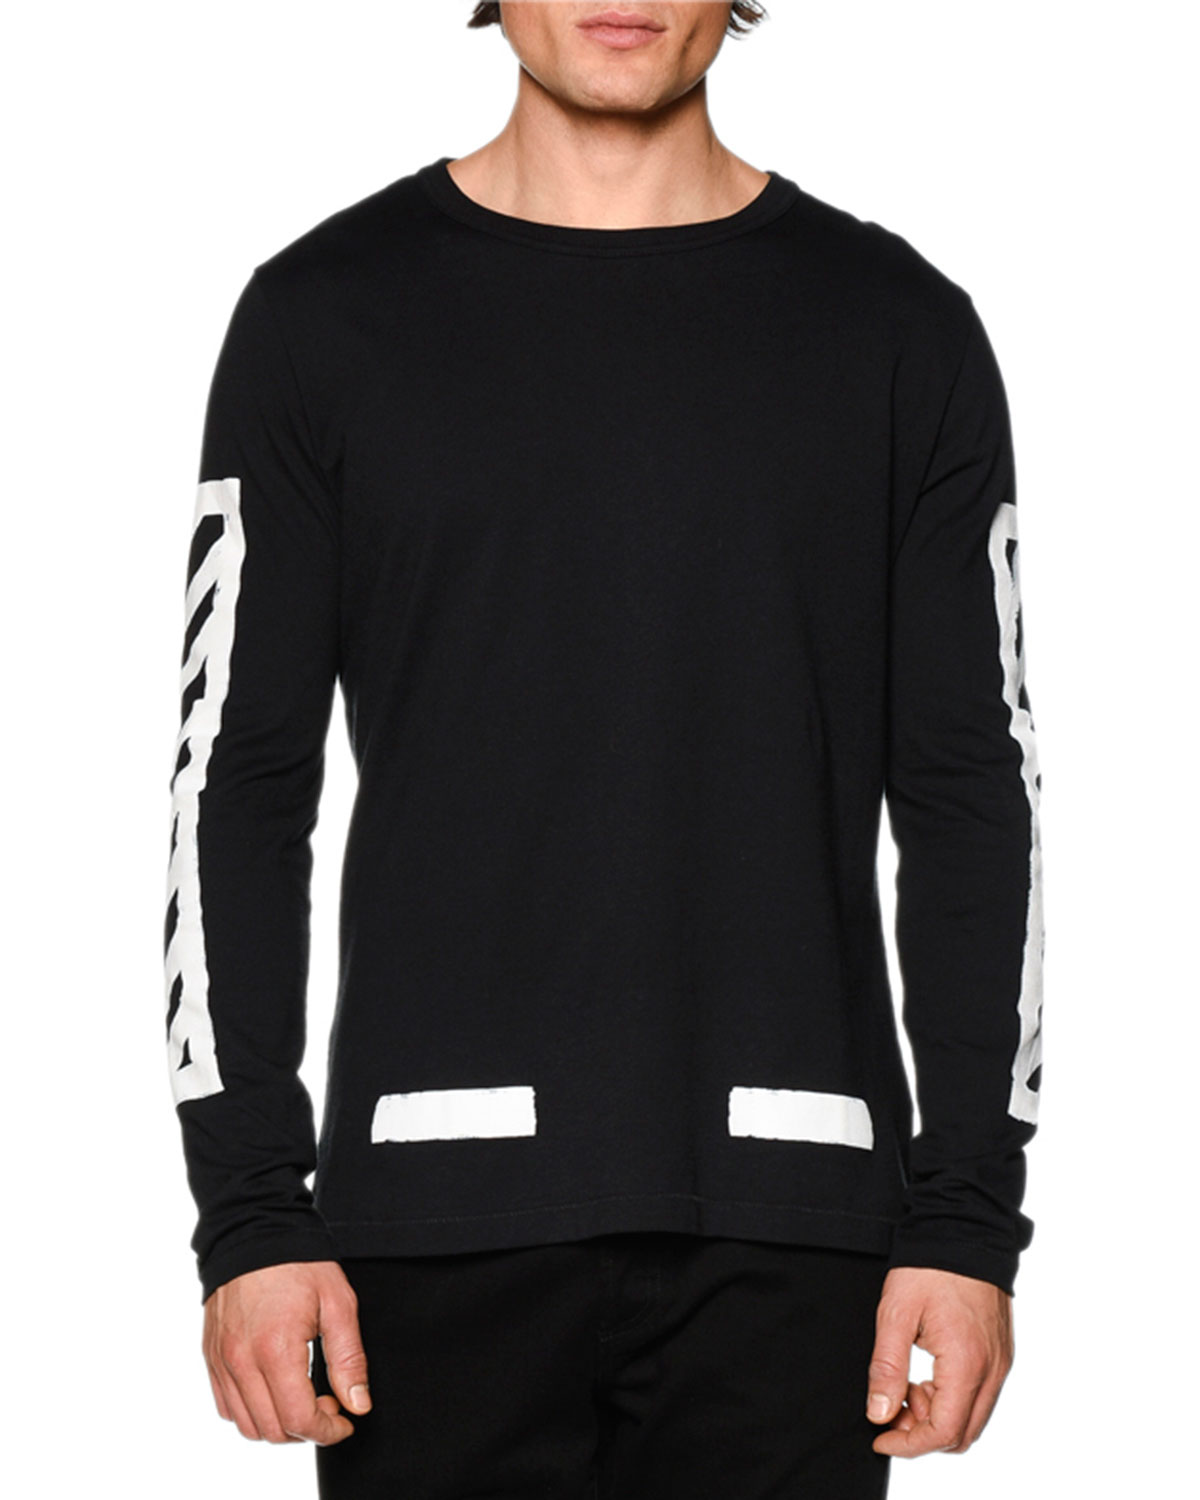 e60f6fc84937 Off-White Brushed Lines Long-Sleeve Graphic T-Shirt, Black/White ...